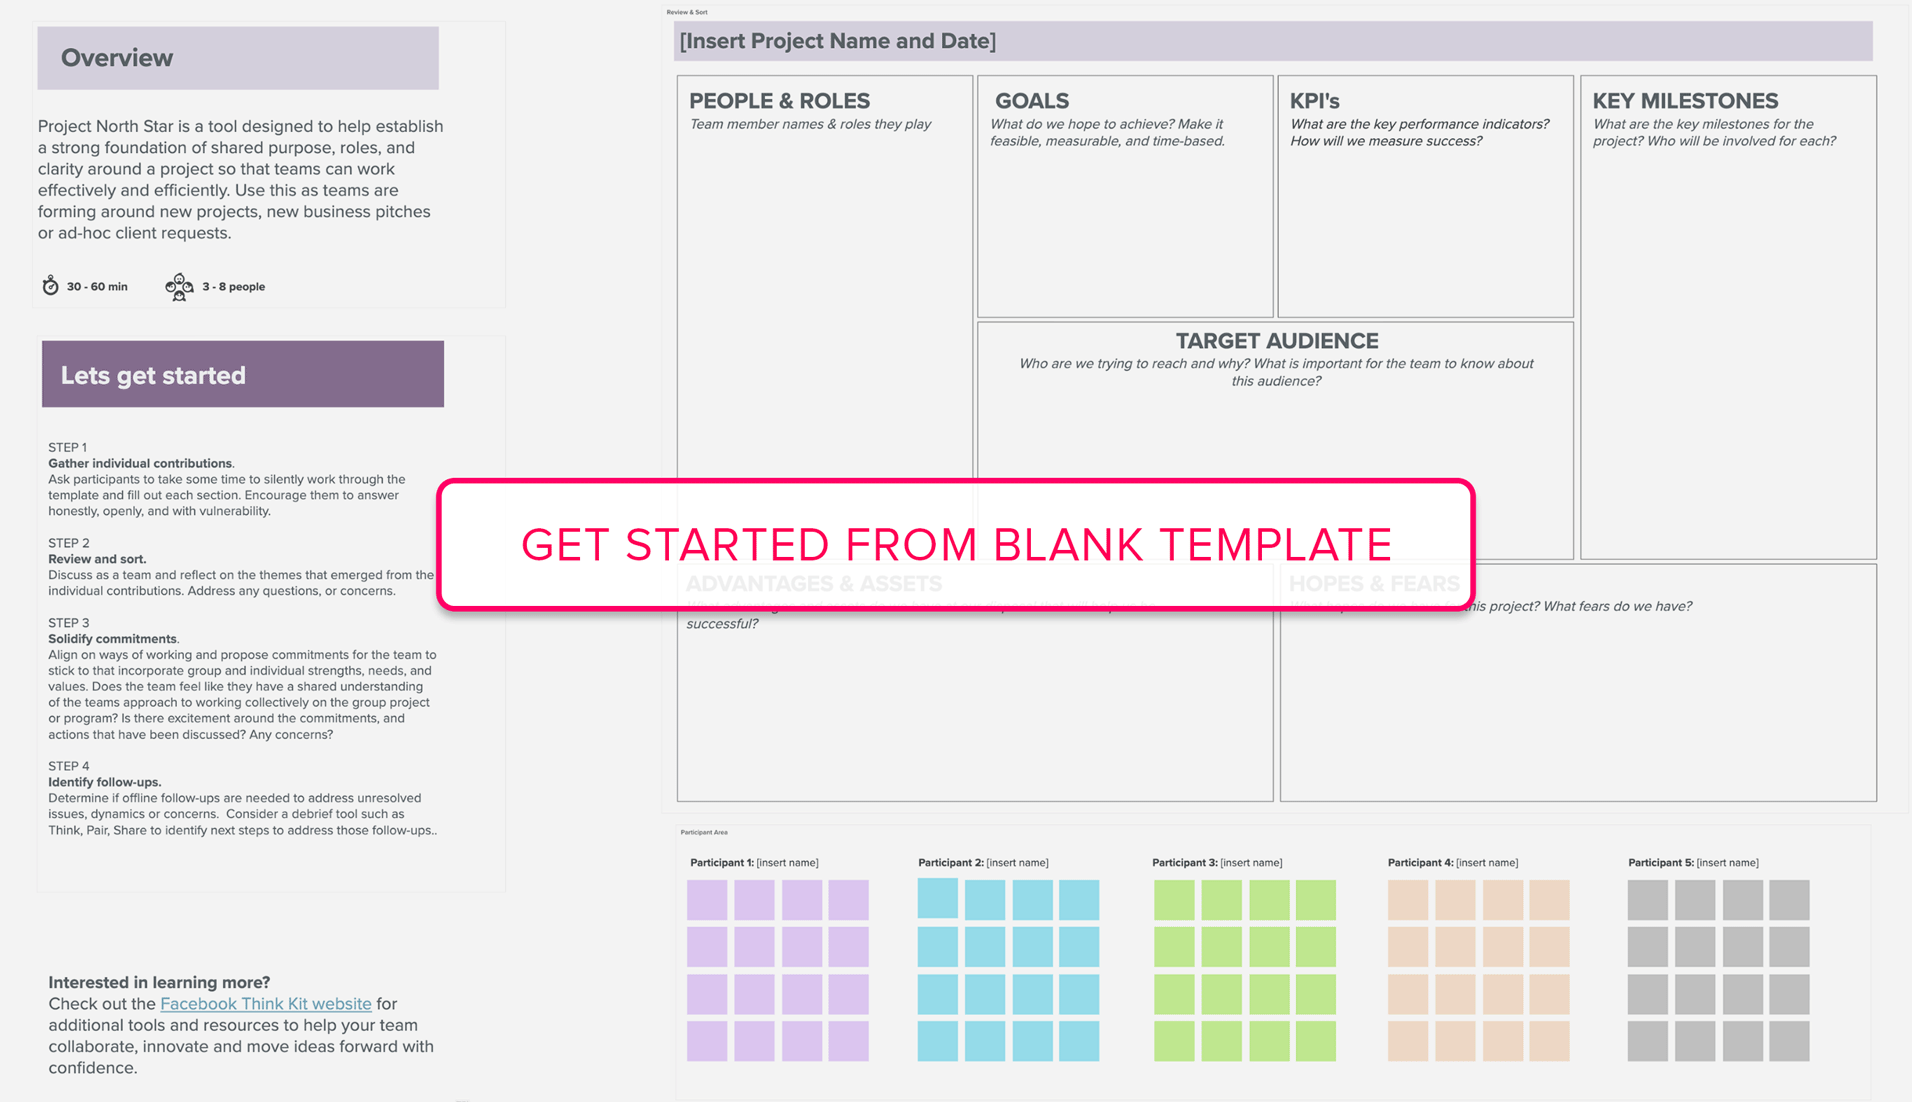 Get started from Project North Star blank template